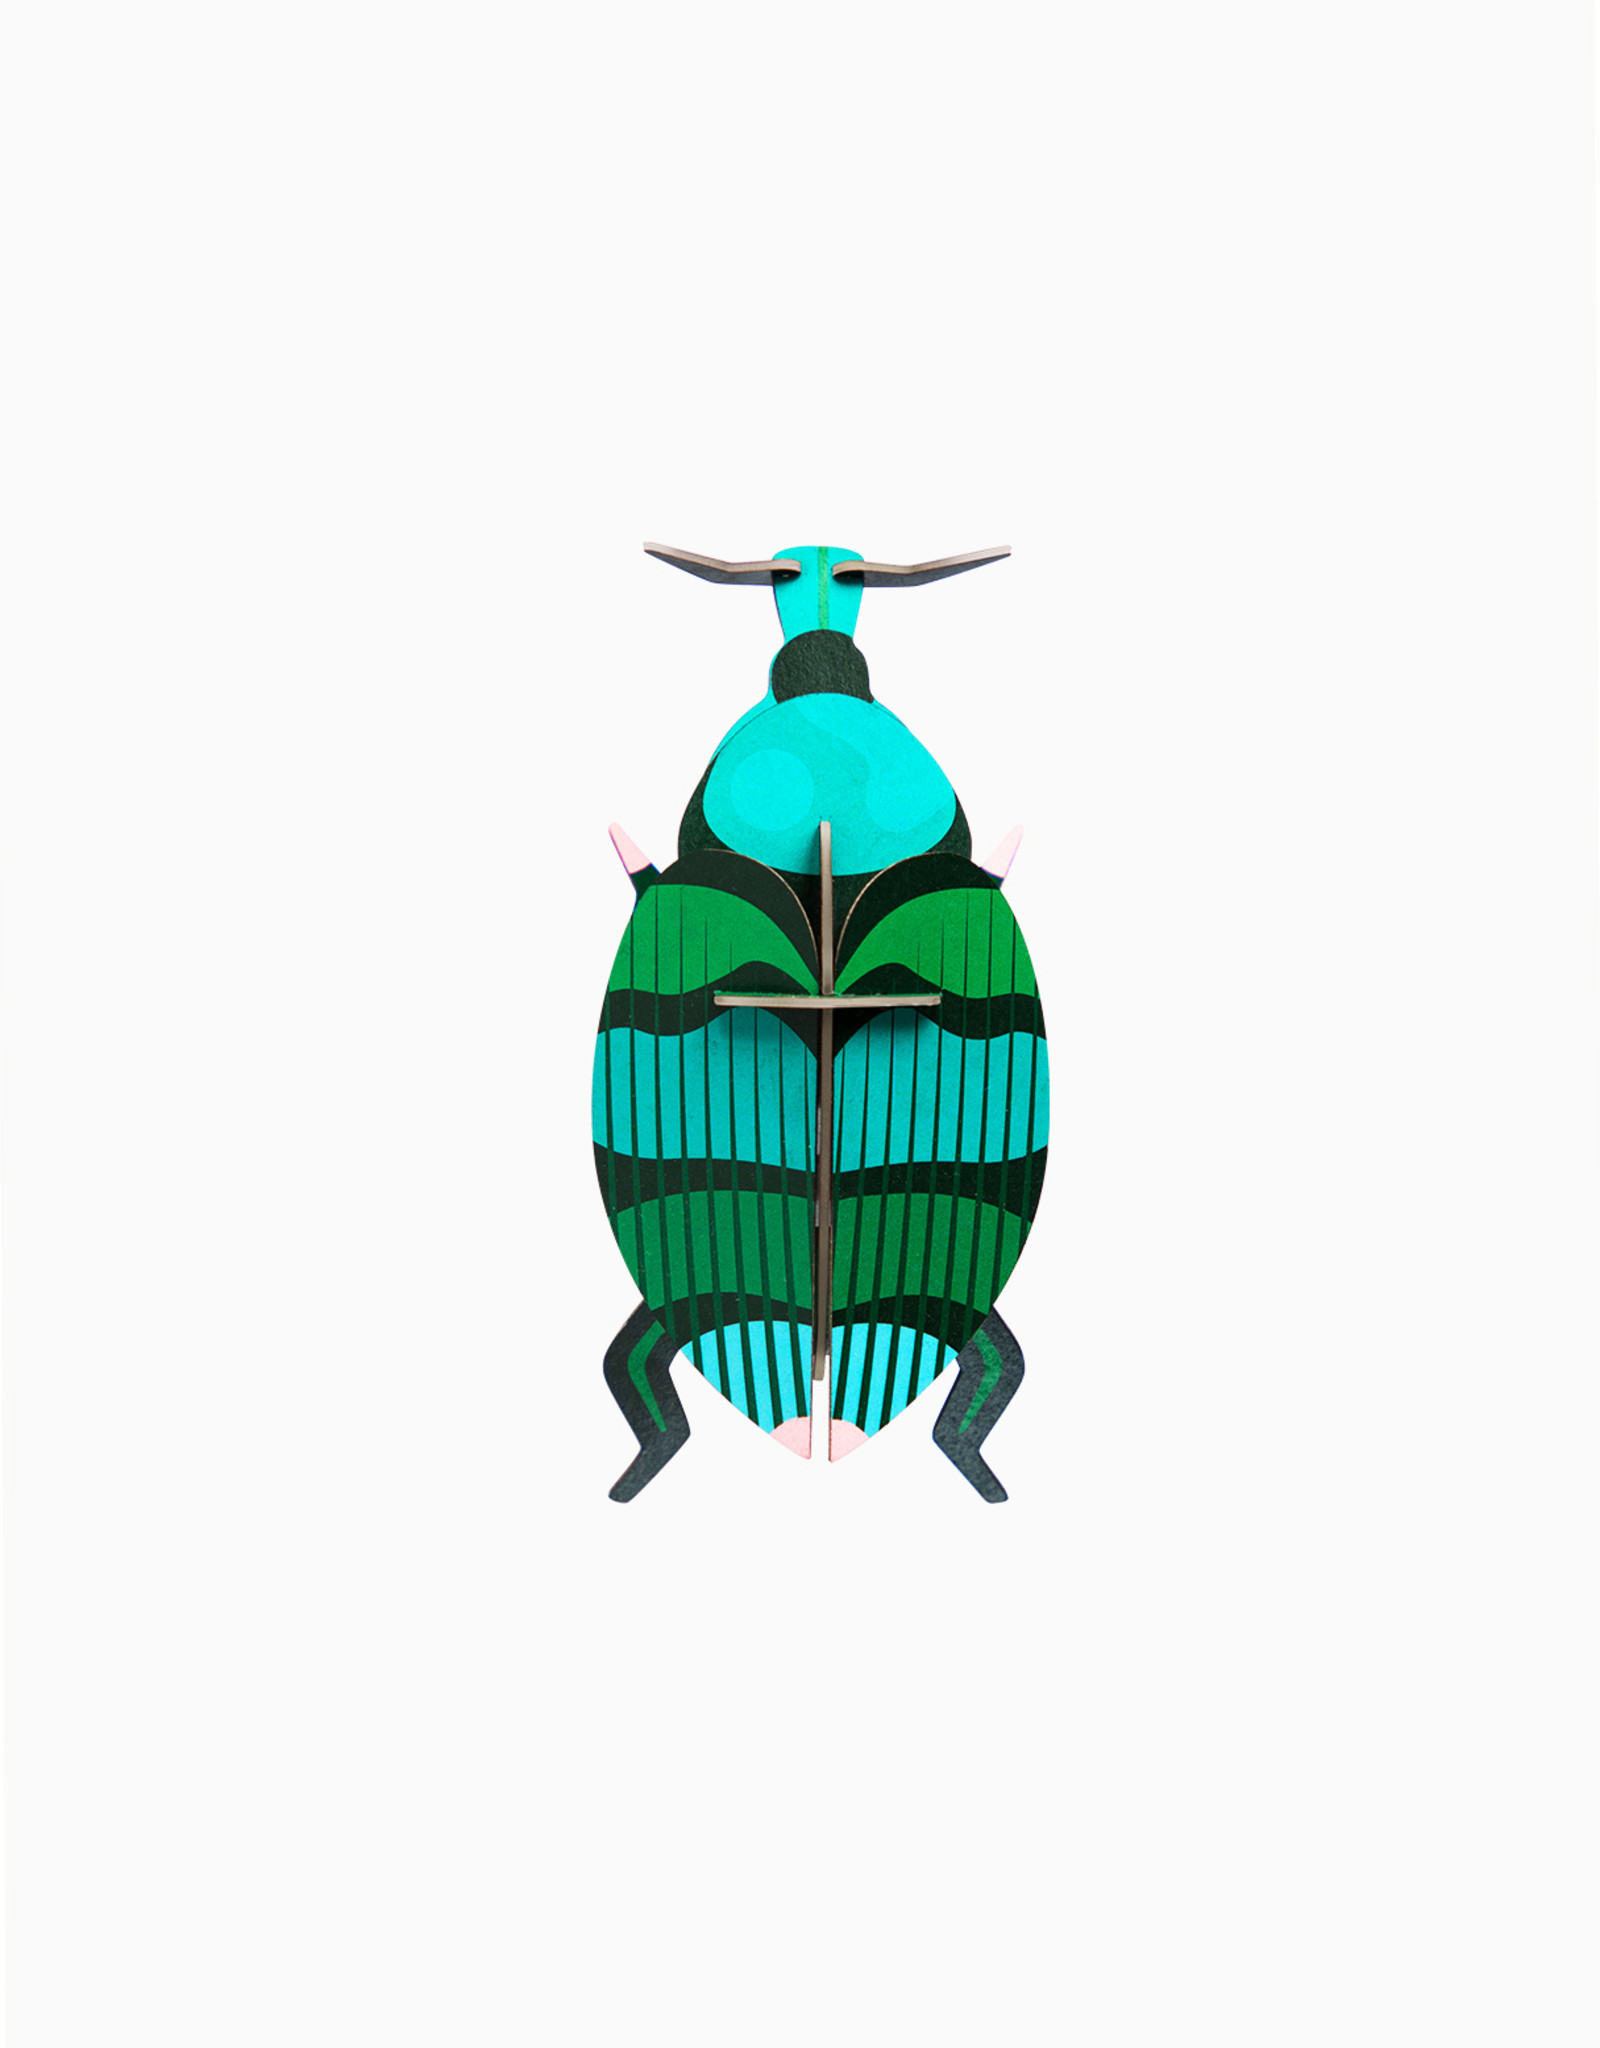 Studioroof Studio Roof Wall Decor Weevil Beetle